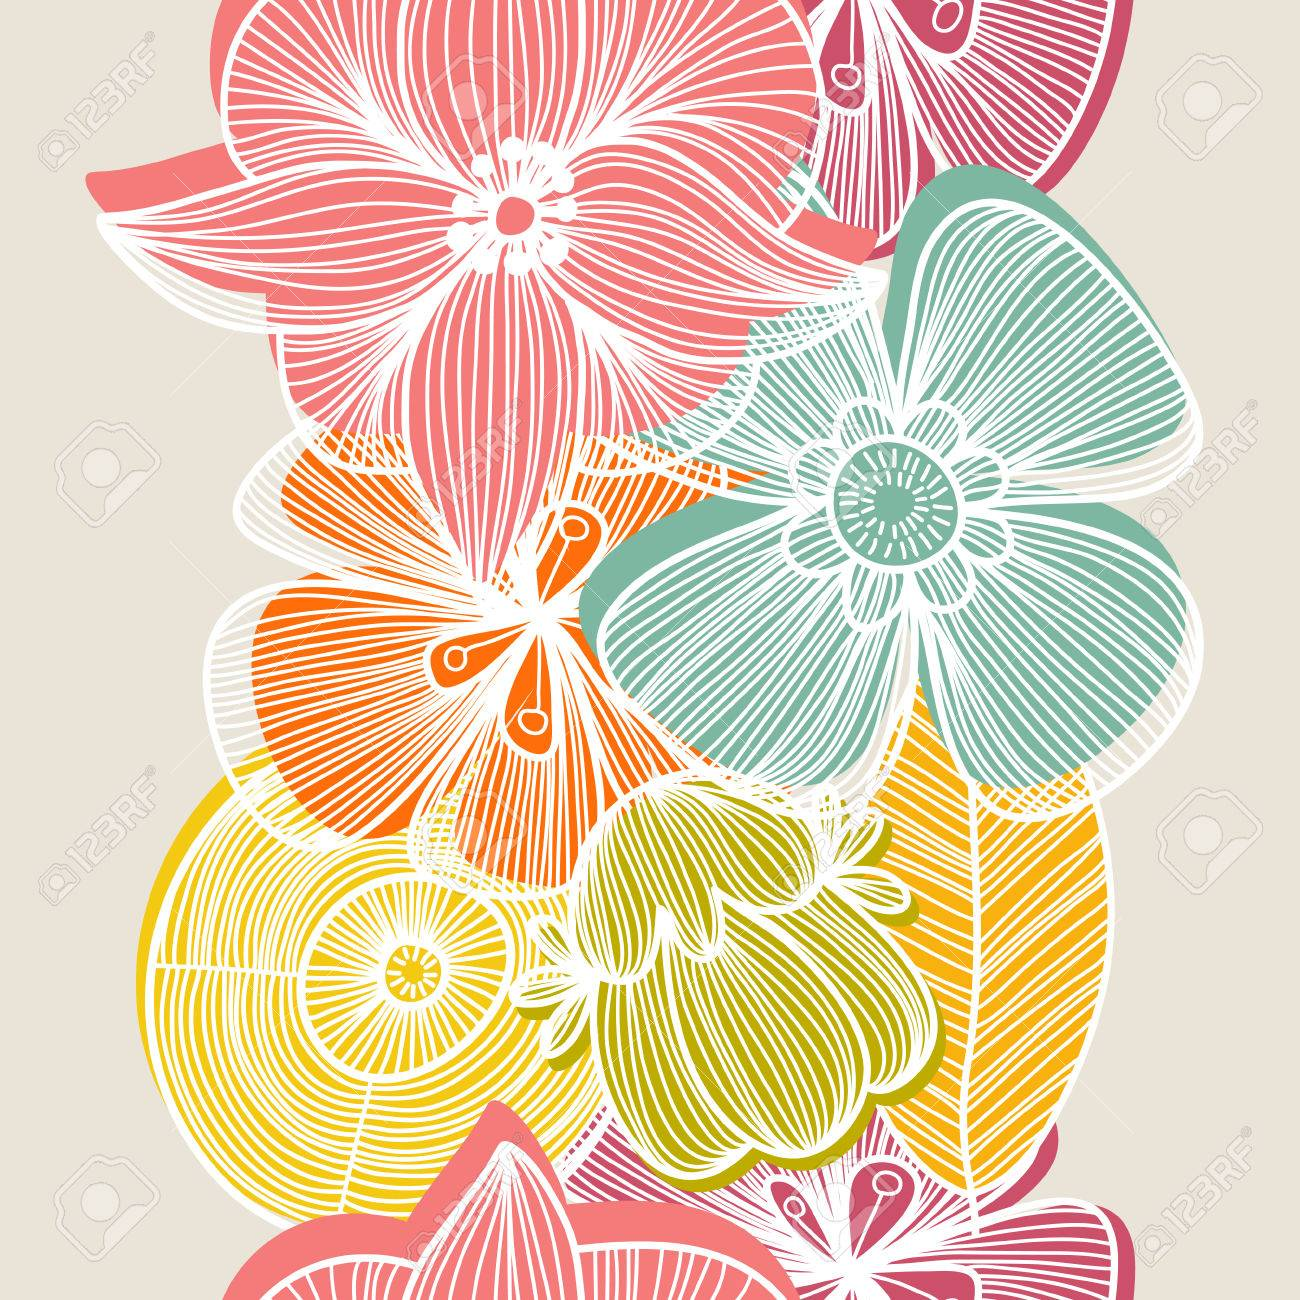 Cute Floral Seamless Pattern In Vintage ColorsBright Can Be Used For Wallpaper